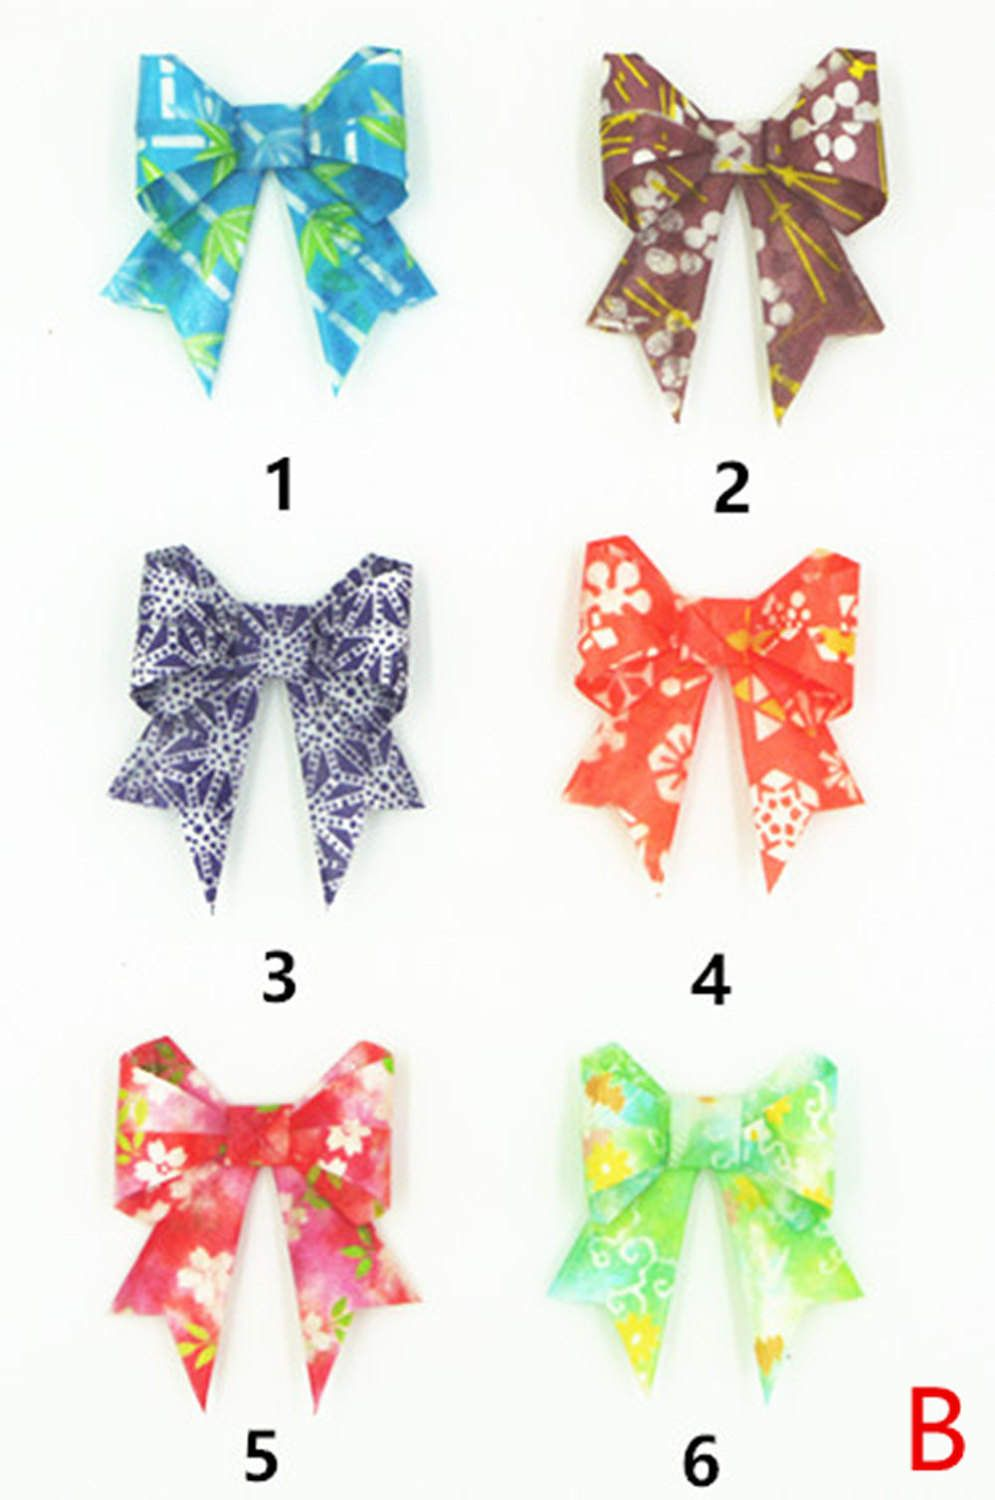 Water Resist Origami Jewelry Japanese Origami Bowknot by qiaojiang on Etsy